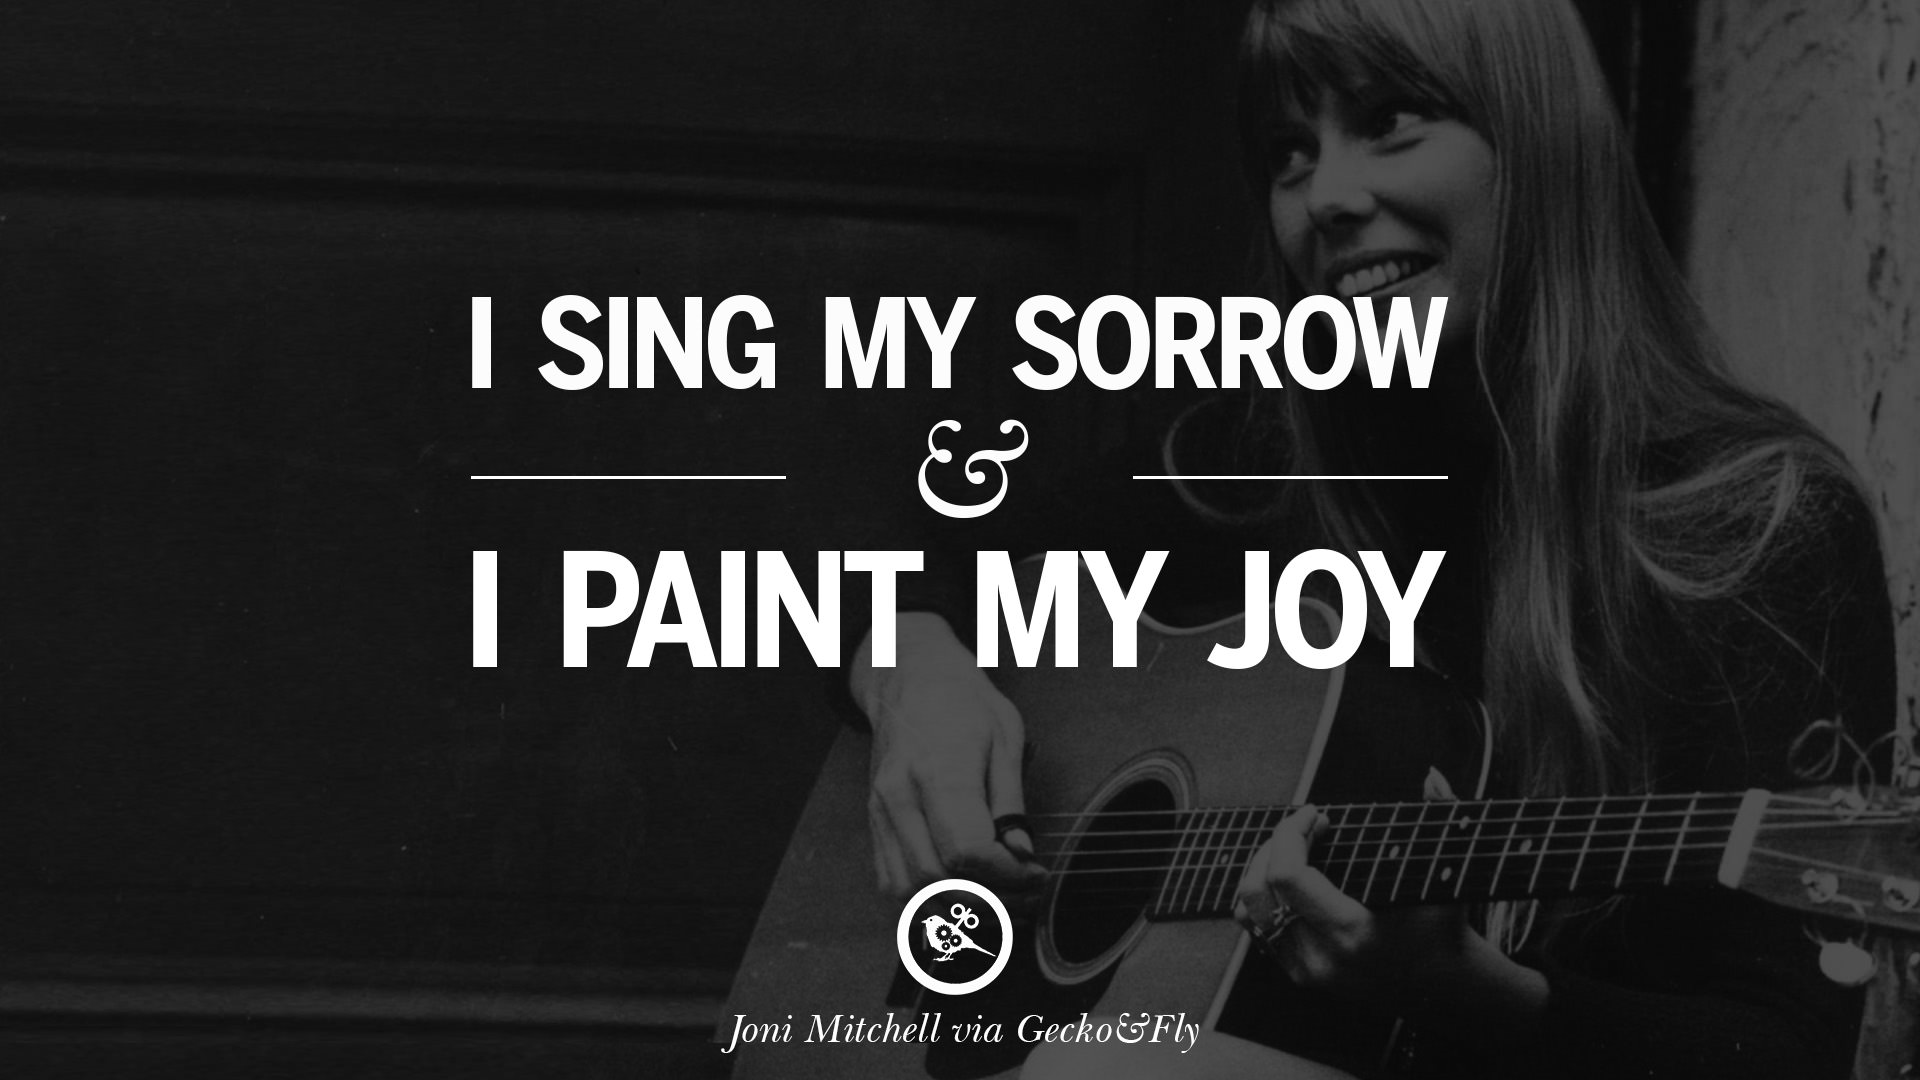 Love Music Quotes 10 Amazing Joni Mitchell Quotes On Love Life And Sorrow